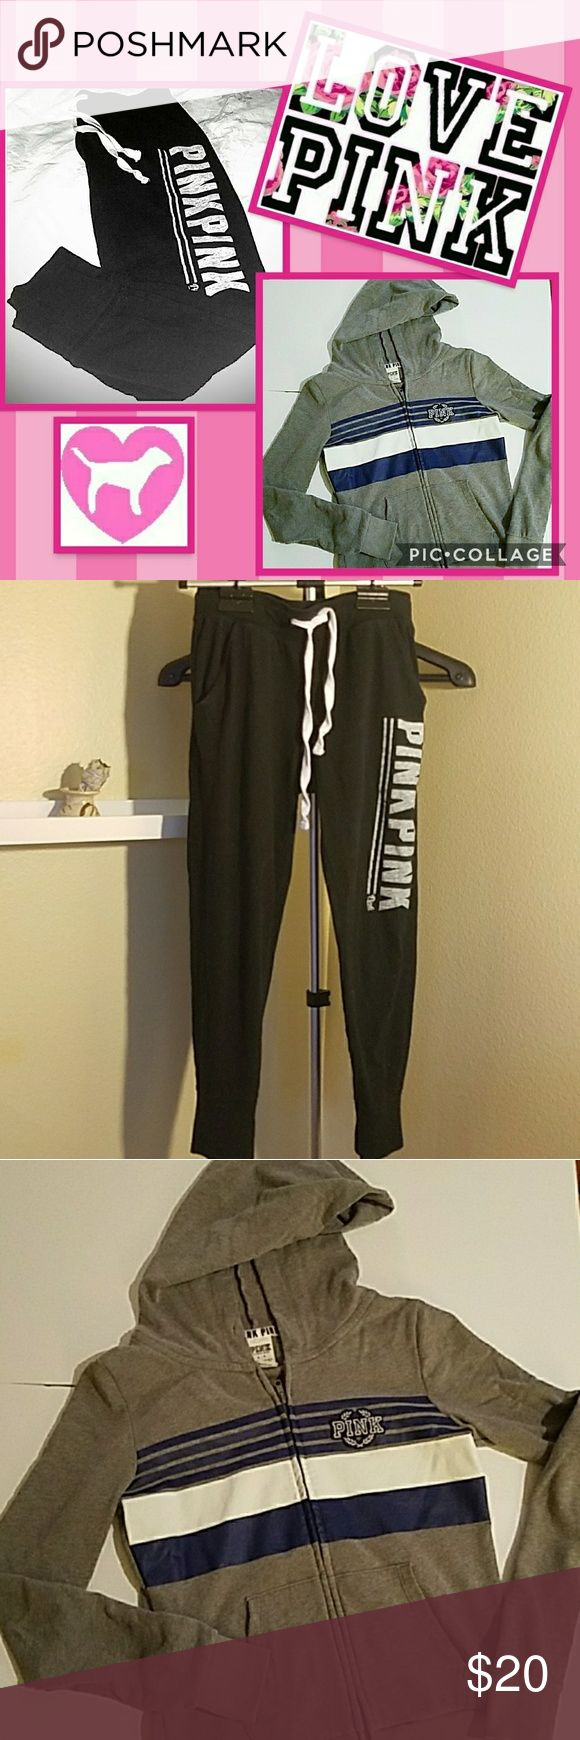 "VS PINK BUNDLE VS PINK SWEATPANTS - size small, black with gray ""PINK"" down leg, draw string,  cinched ankels, excellent condition, no damage  VS PINK ZIP UP HOODIE - size small, gray with blue monogram on front, excellent condition, no damage  ** ALSO AVAILABLE SEPARATELY ** PINK Victoria's Secret Other"